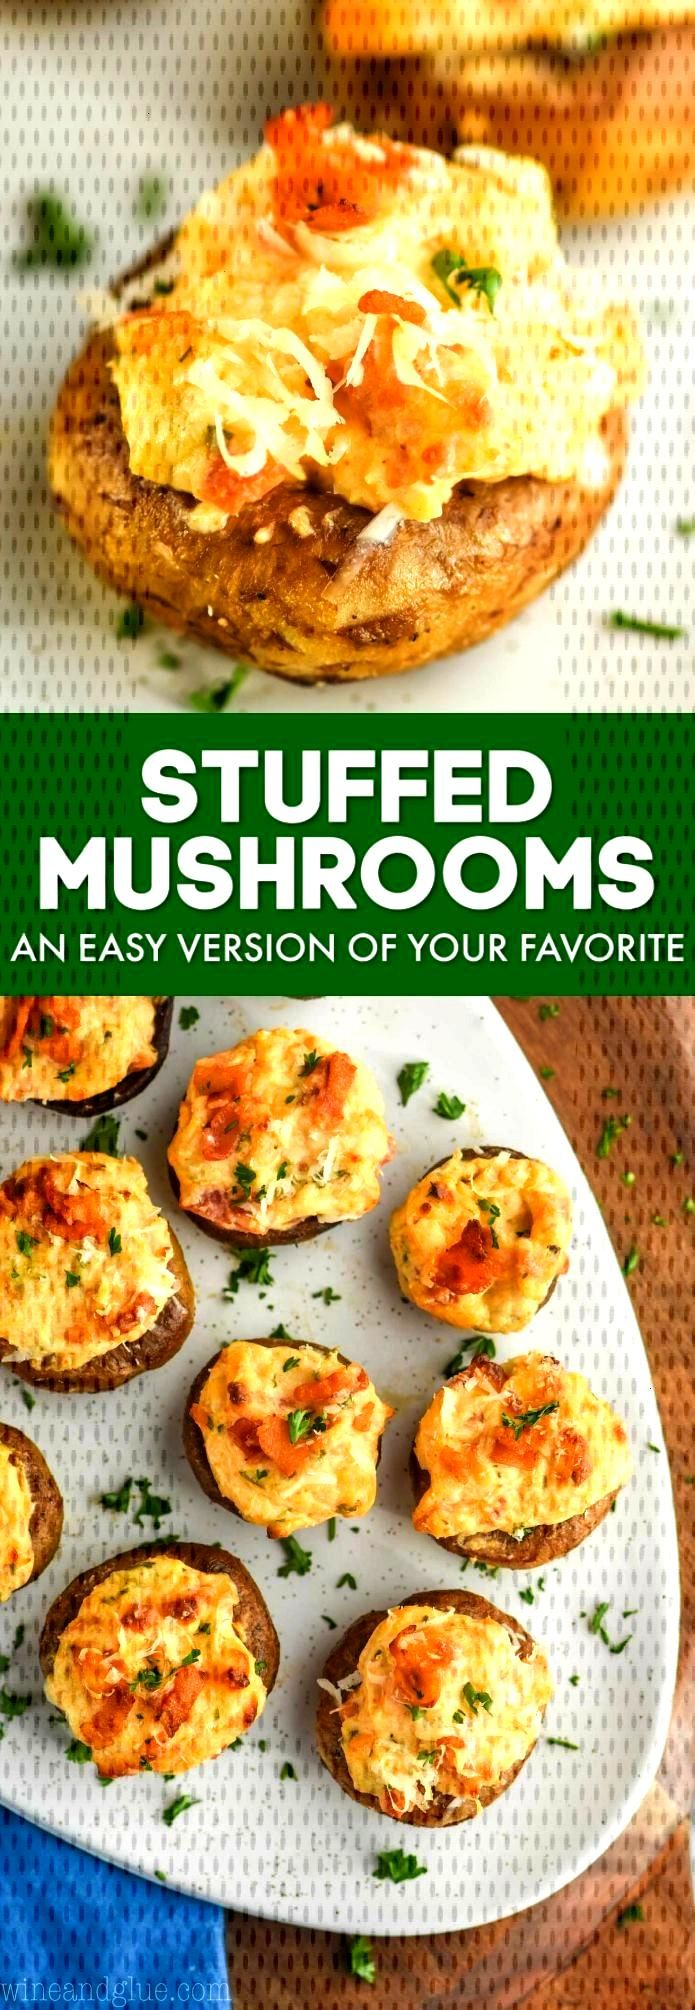 Cream Cheese Stuffed Mushrooms - Wine amp Glue Stuffed Mushrooms are a great appetizer for parties.